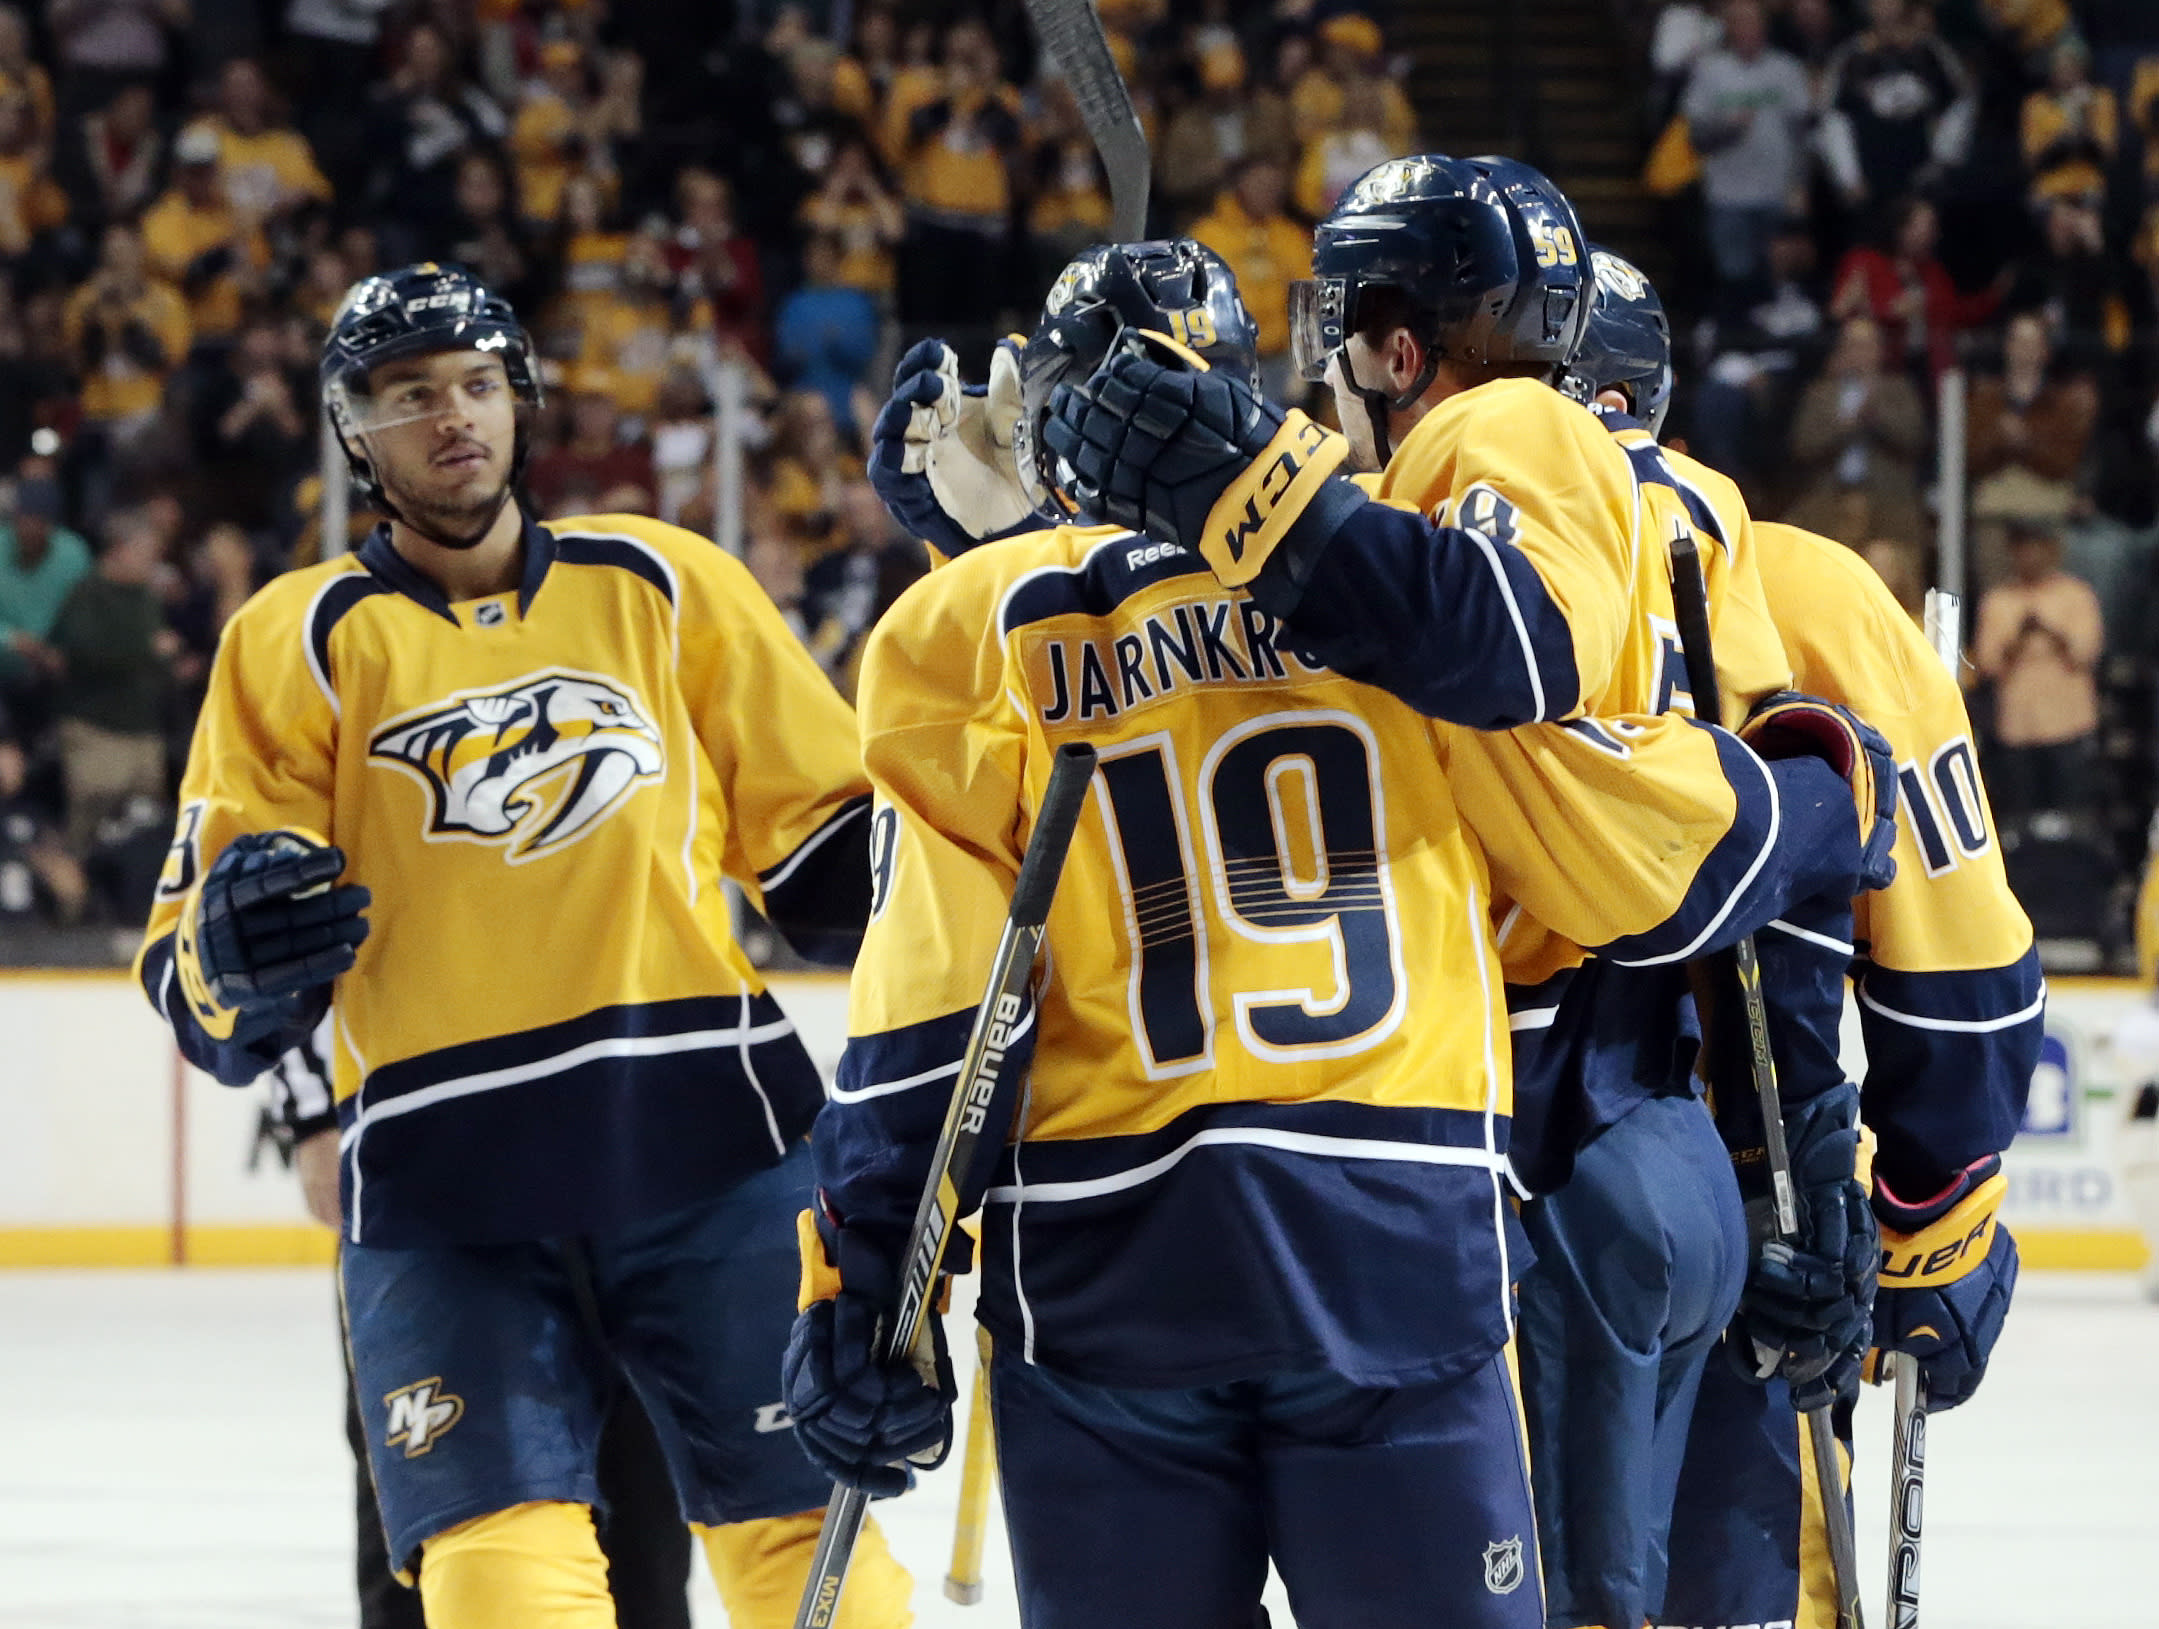 Playoffs clinched, Predators target more with 5 games left